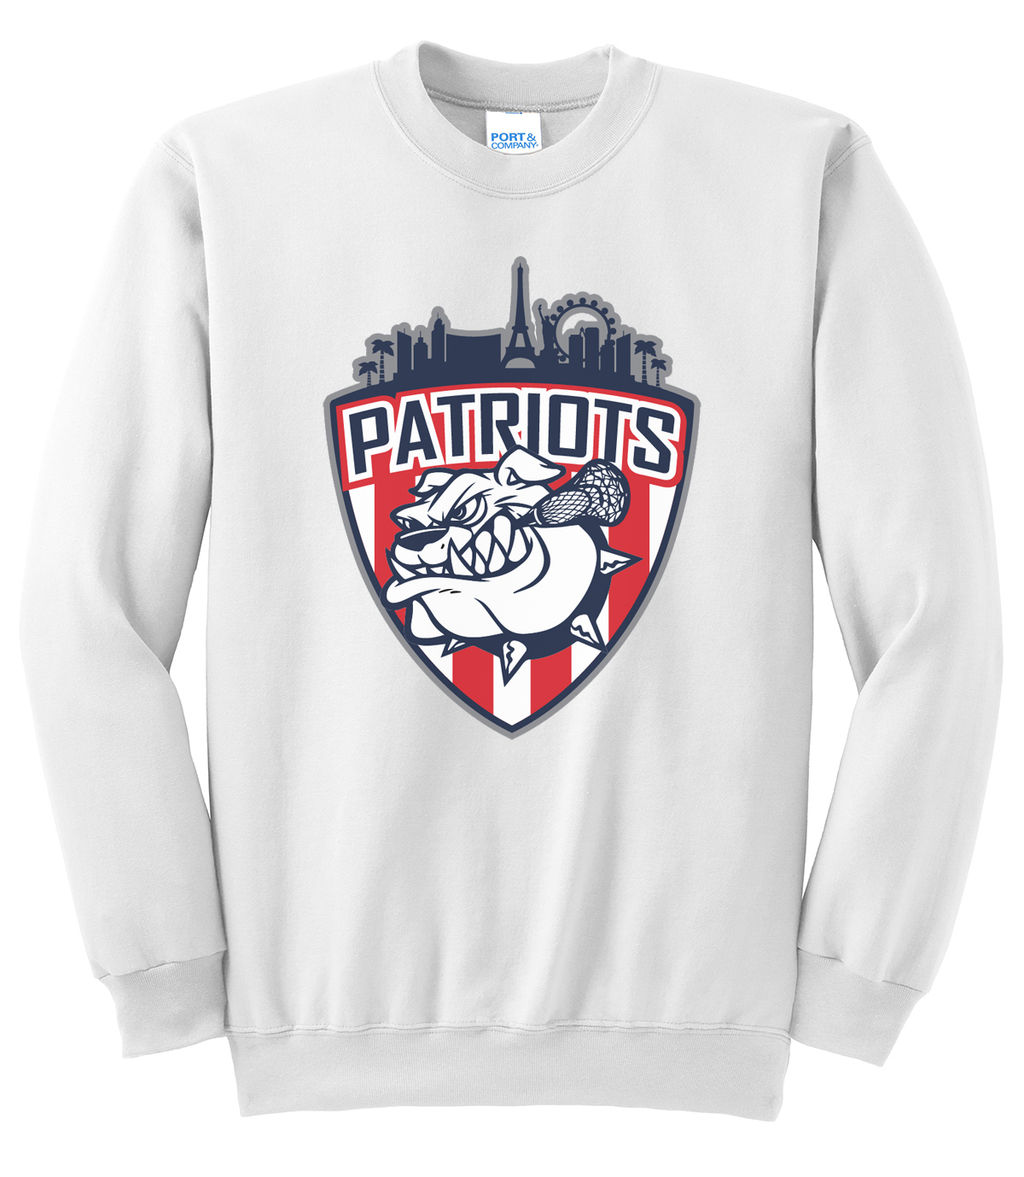 Las Vegas Patriots White Crew Neck Sweatshirt